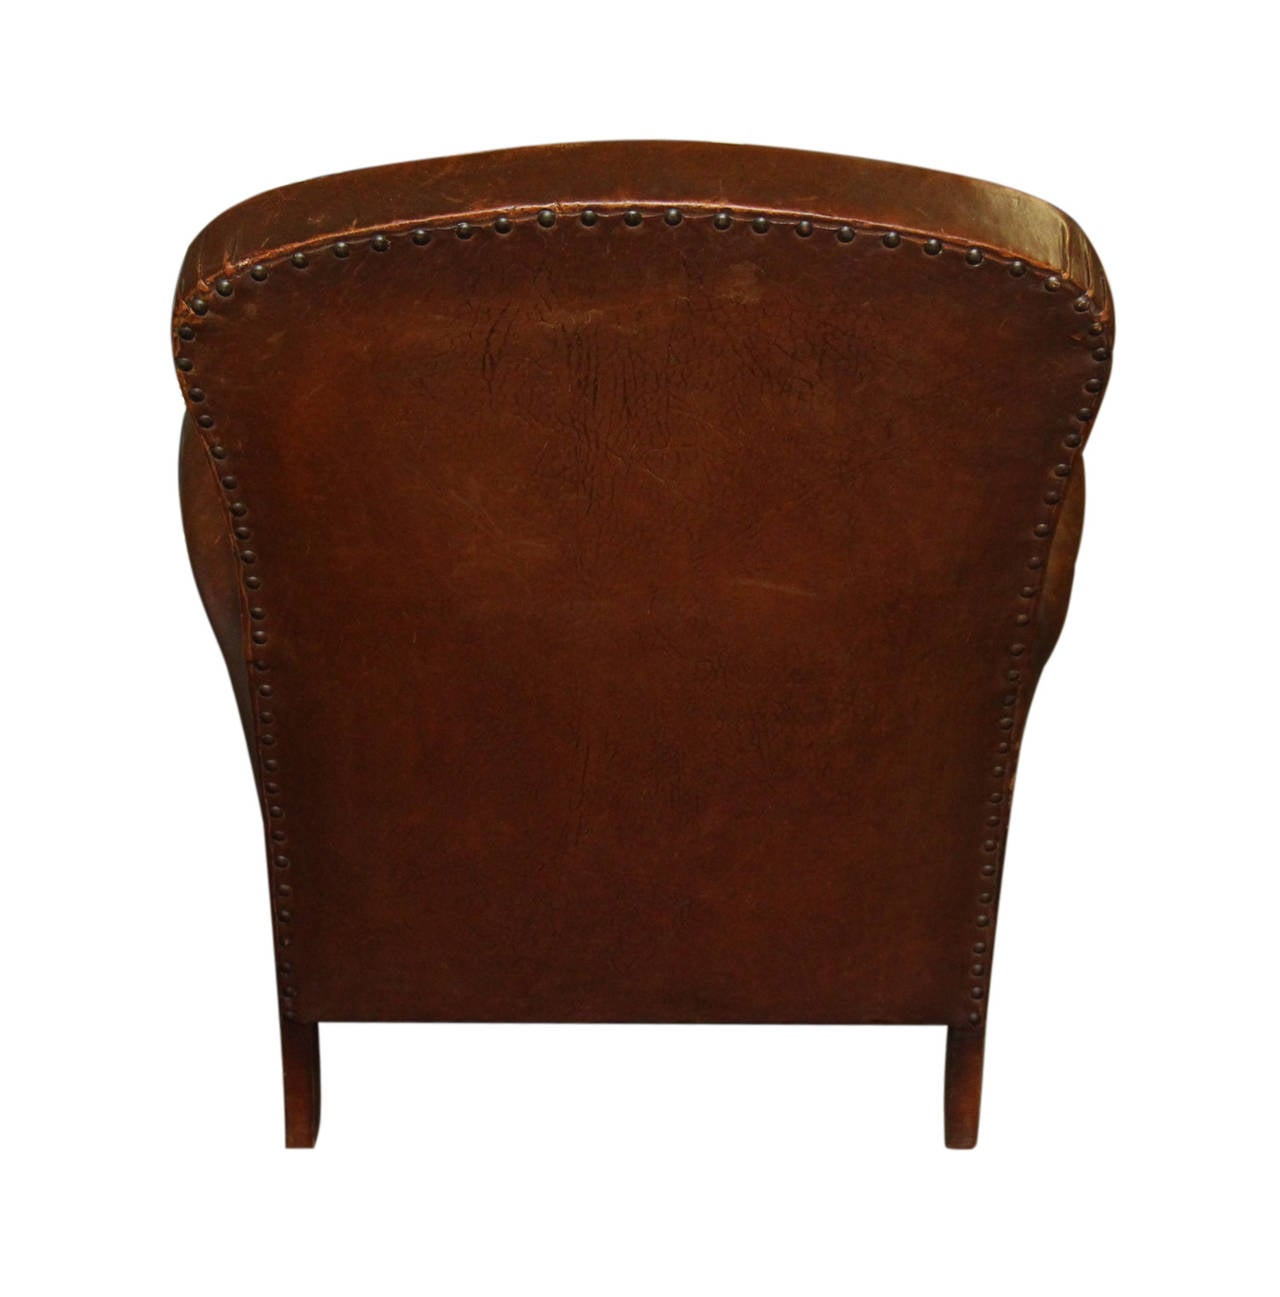 1940s French Leather Club Chair At 1stdibs